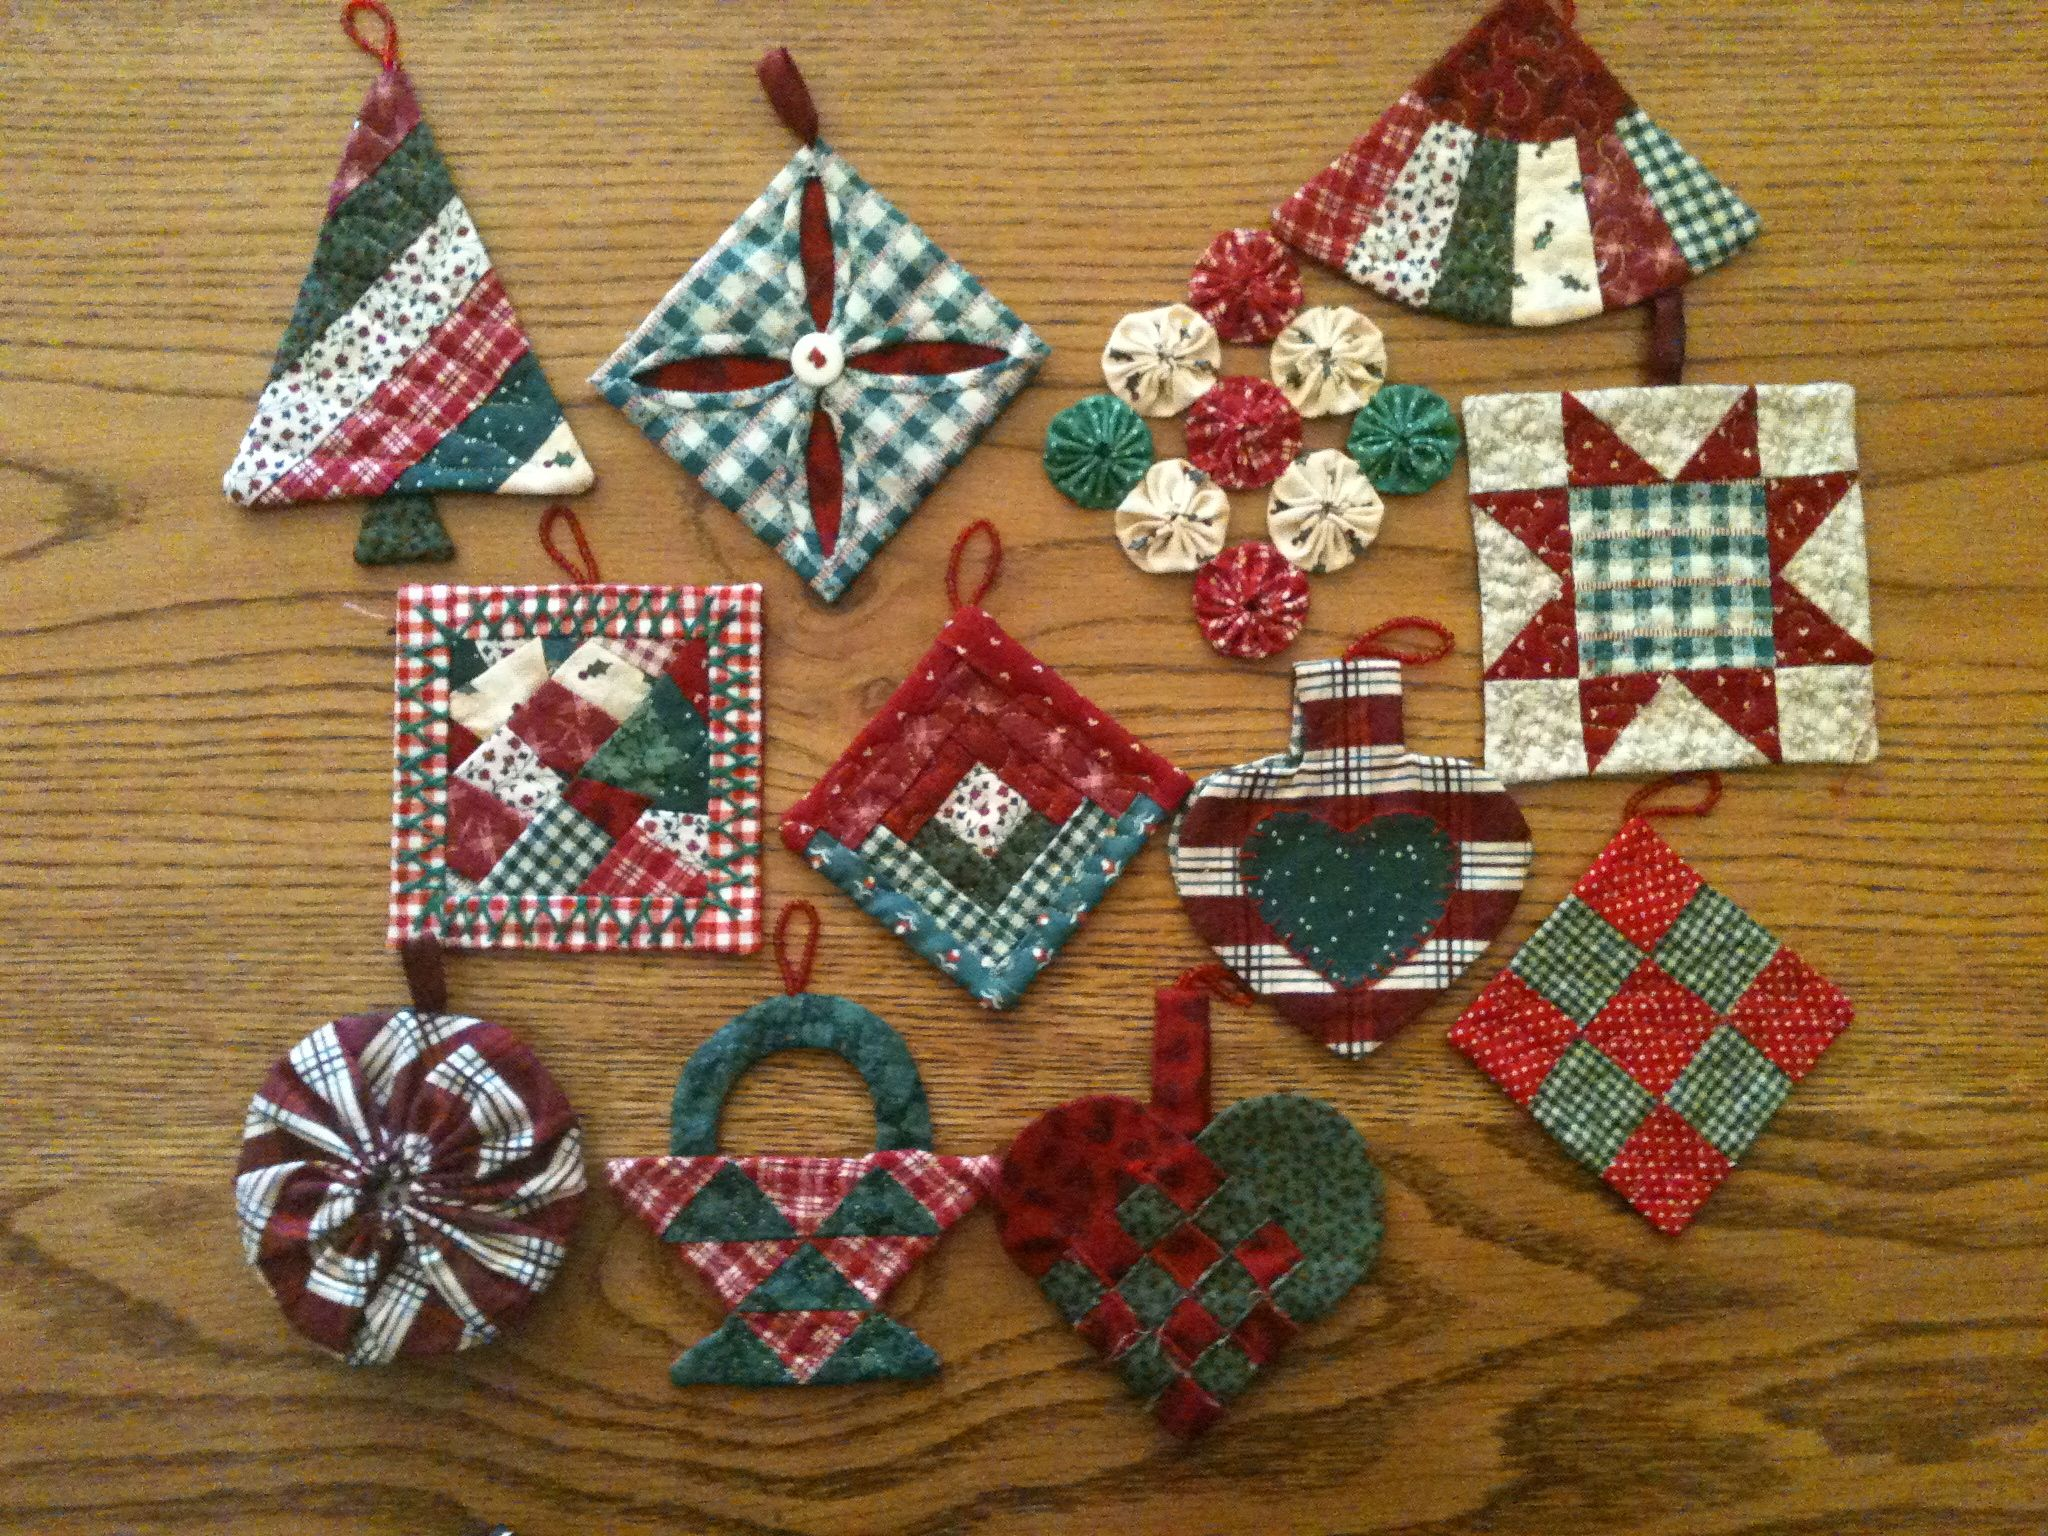 Quilting Christmas Ornaments Patterns : quilted ornaments Quilted Ornaments Pinterest Window, Cathedral windows and Trees